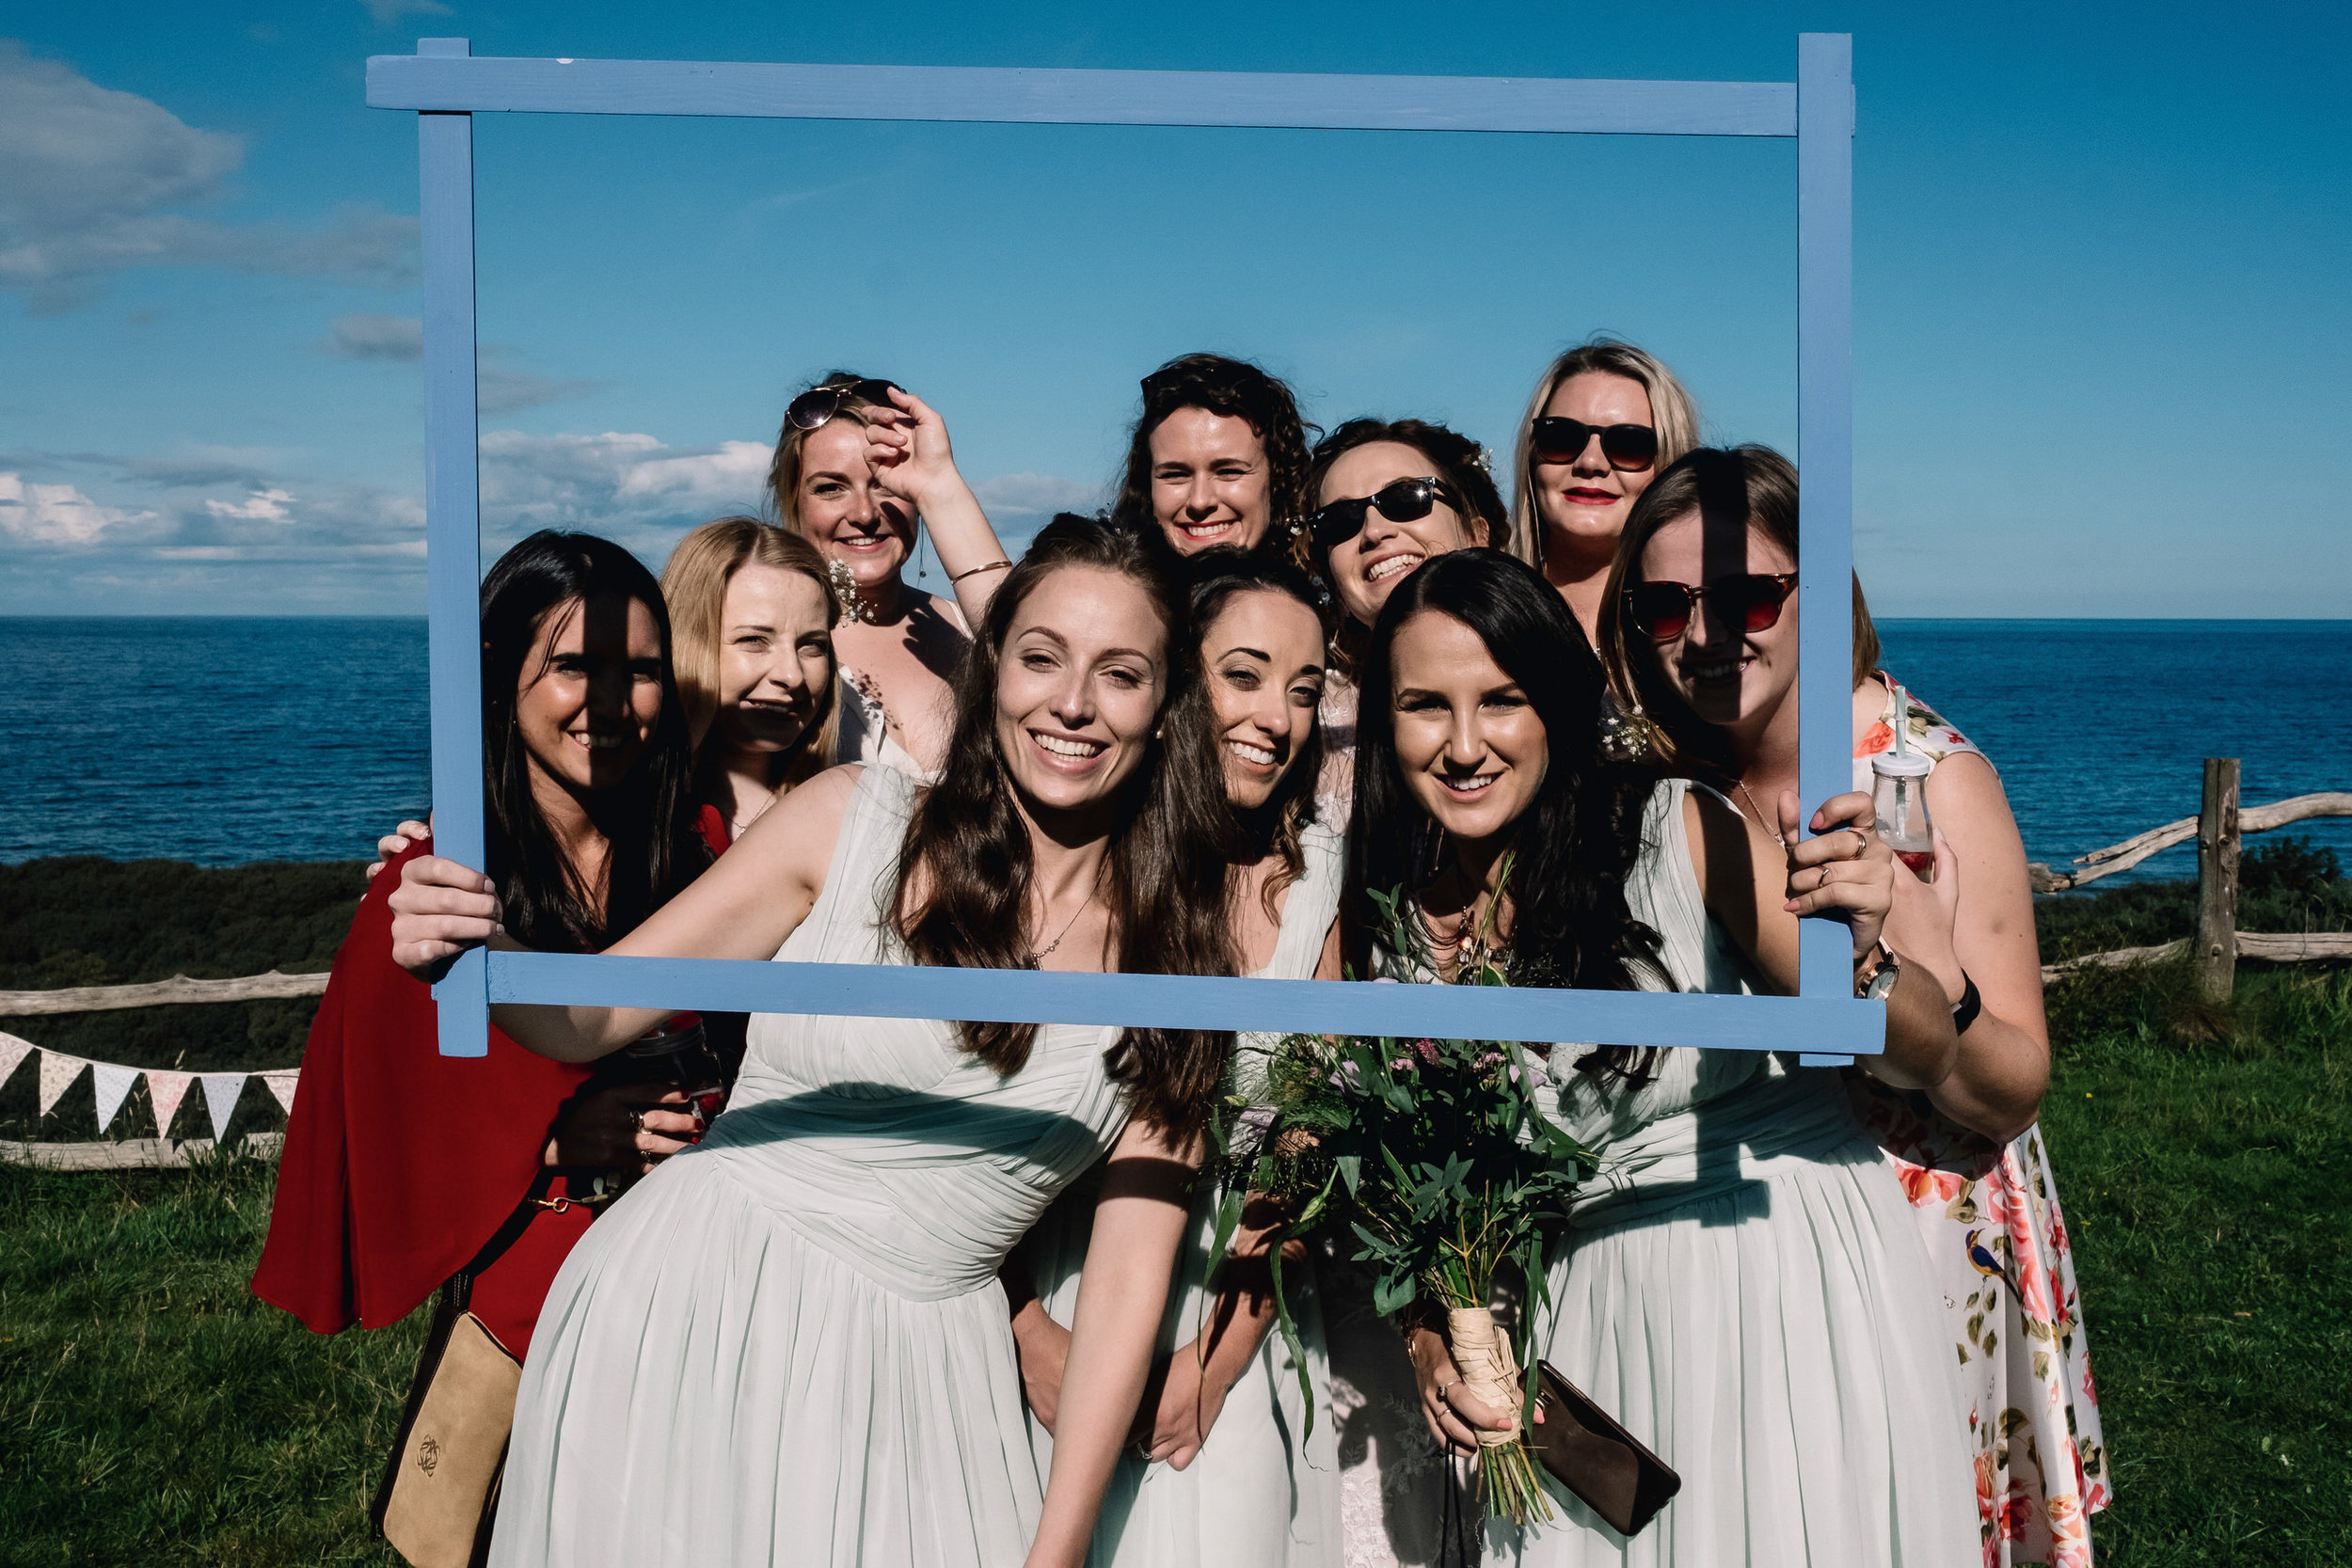 Bride poses with her friends for a fun photo